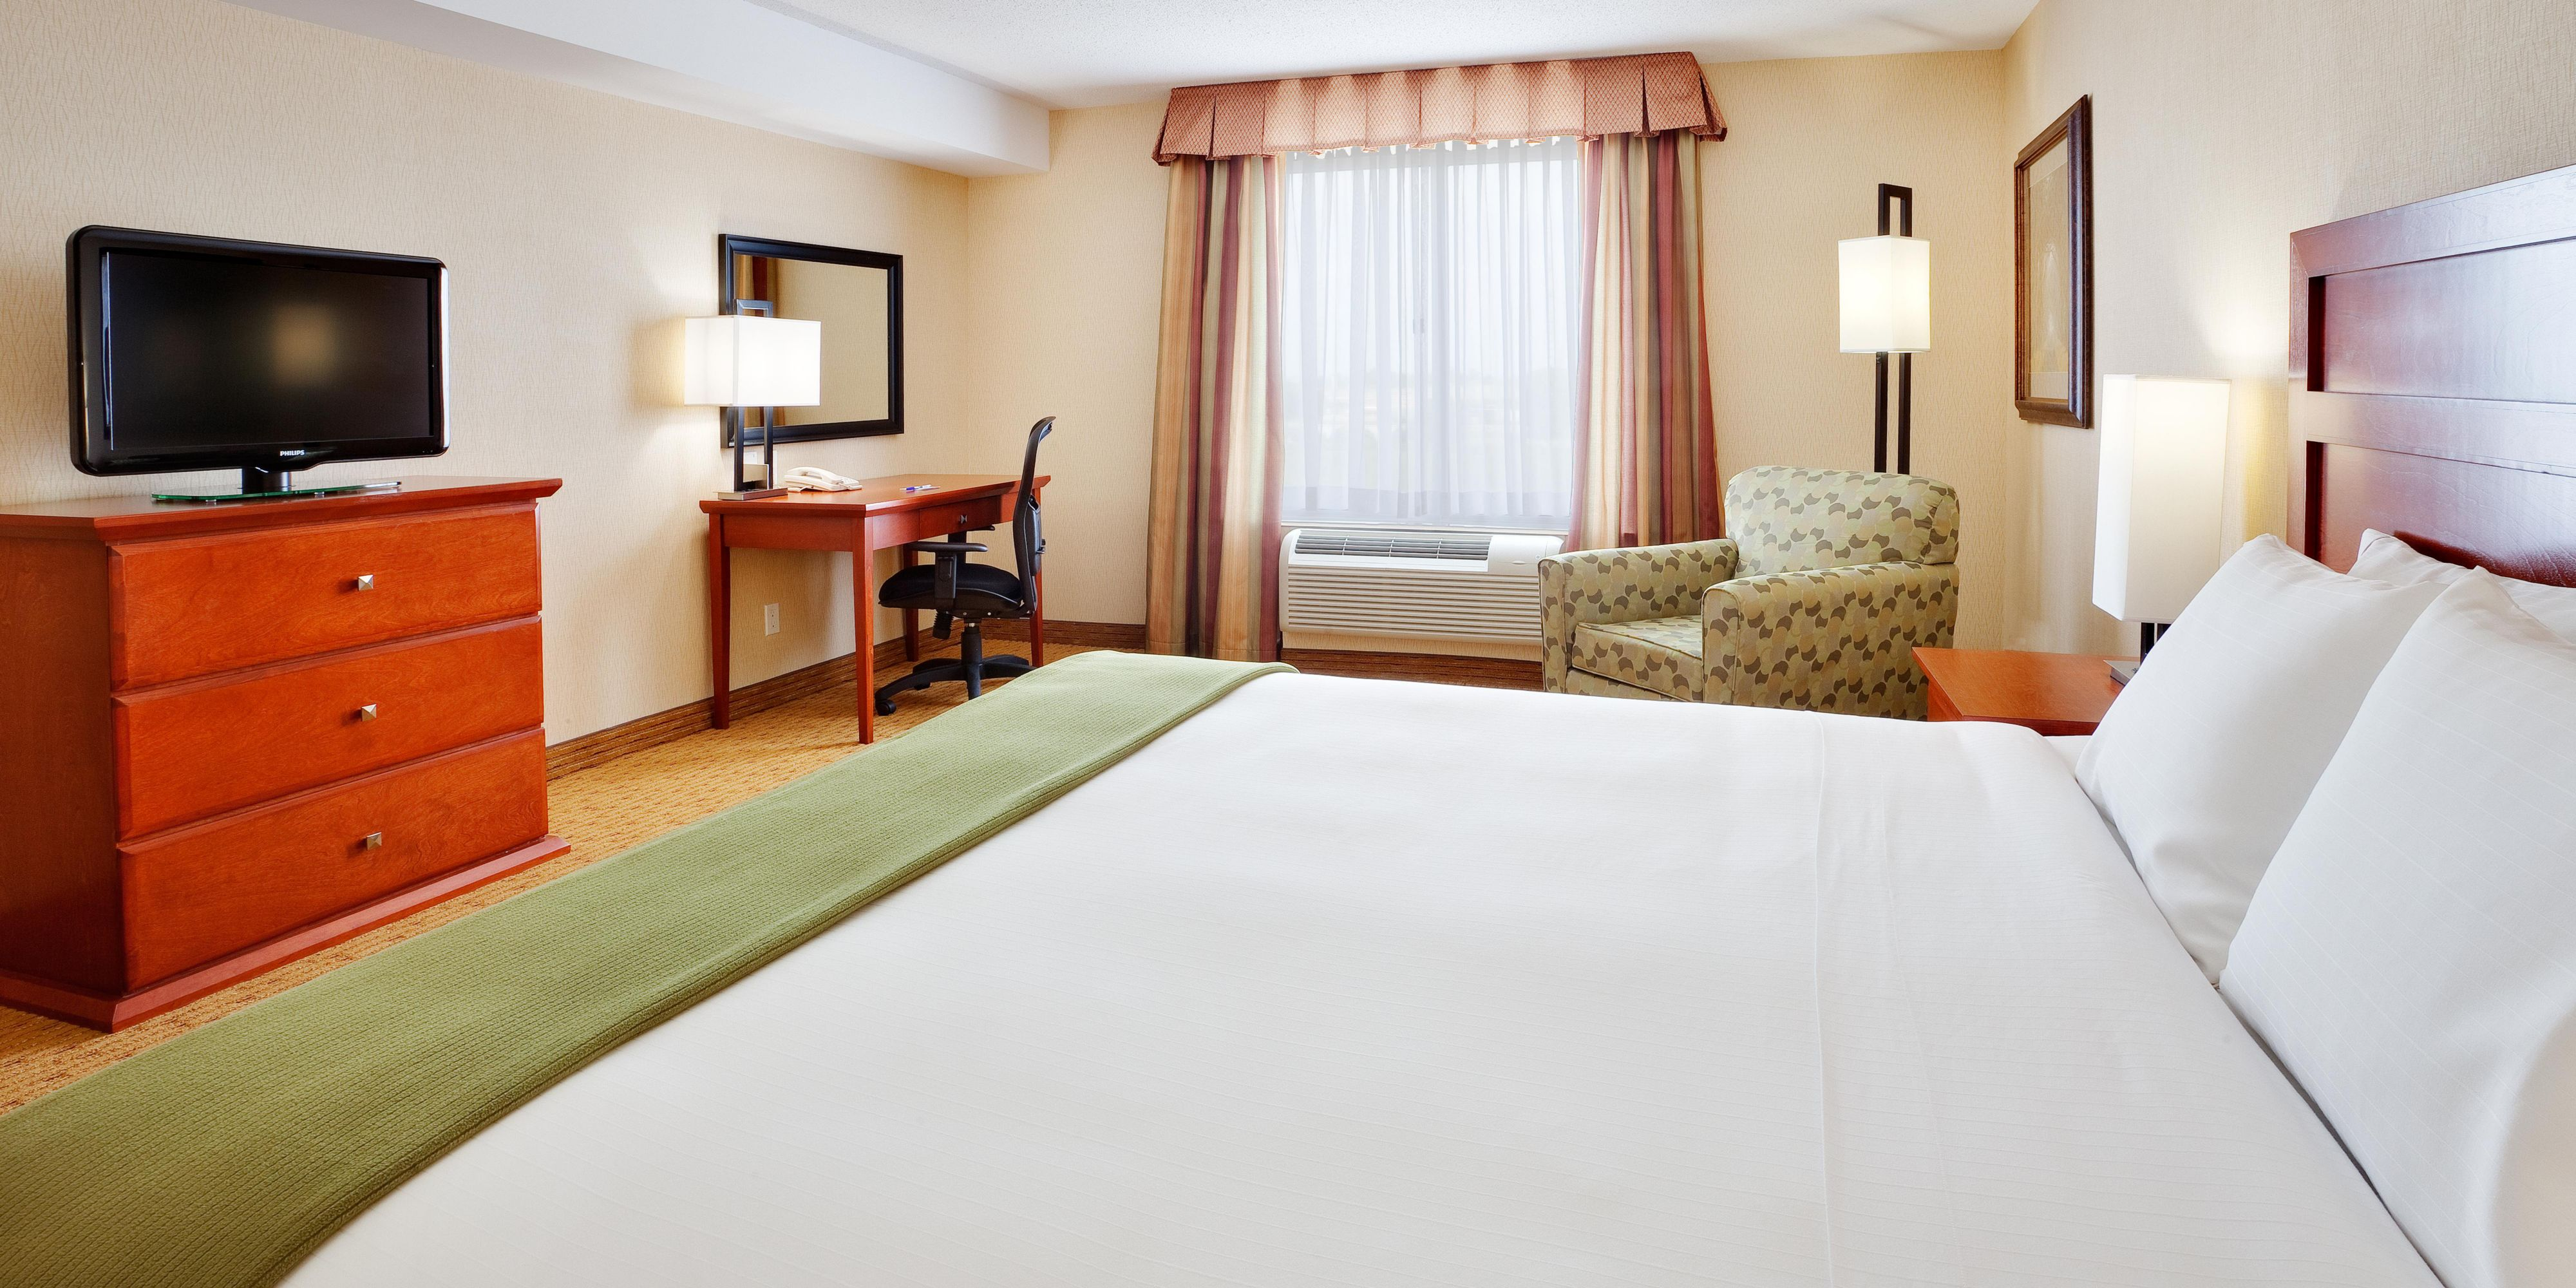 Holiday Inn Express And Suites Bowmanville 4335079419 2x1